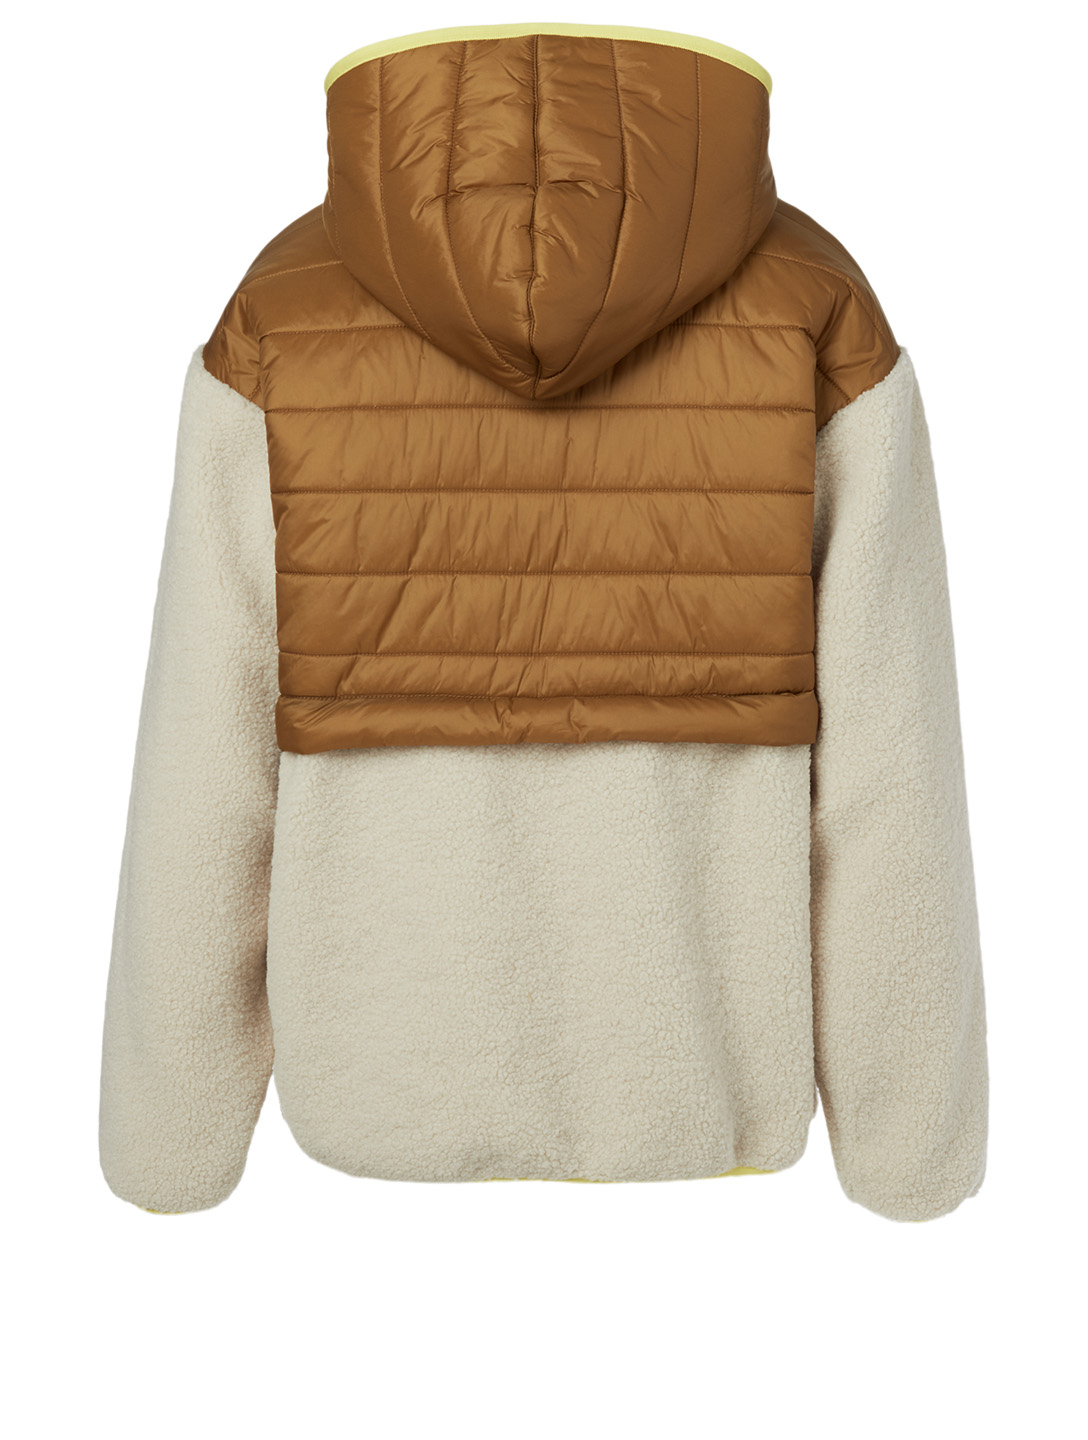 MOTHER Sher-Puff Pullover Sweater Women's Beige